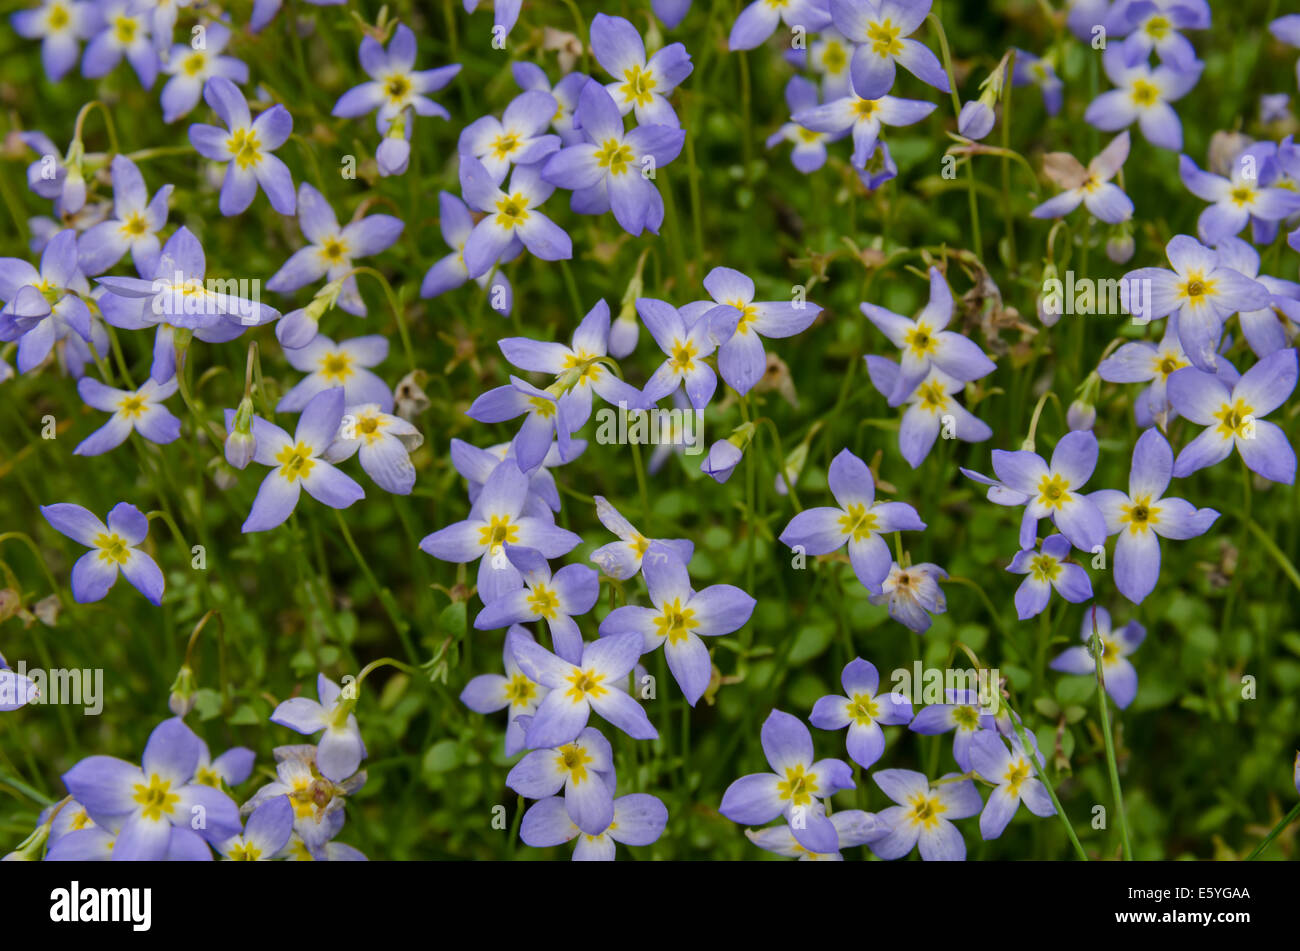 Tiny Purple Flowers With Yellow Centers Coat The Sides Of The Stock